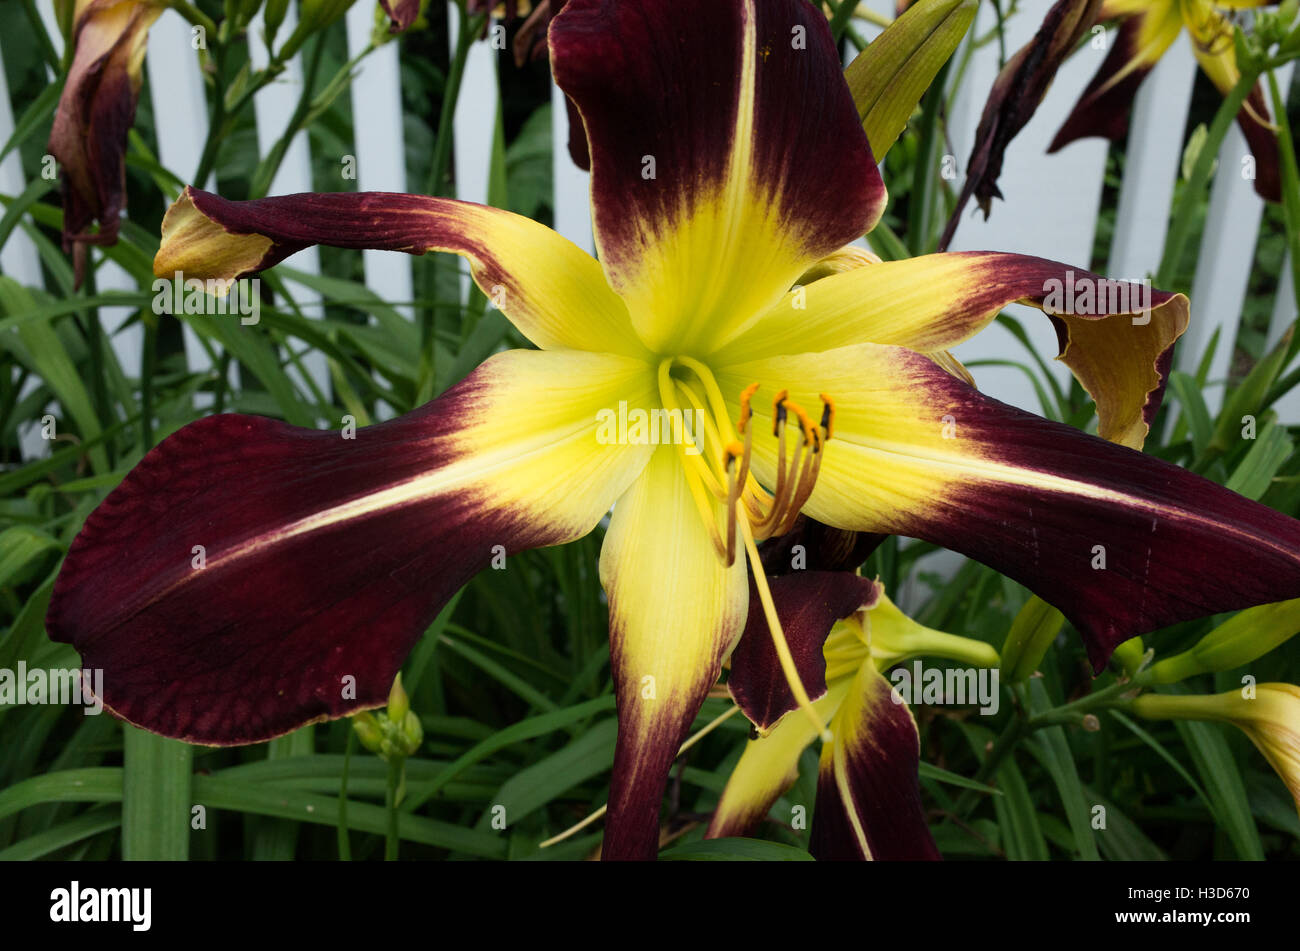 Lily like flower stock photos lily like flower stock images alamy gorgeous purple and yellow lily like flower blossom growing in a garden st paul minnesota izmirmasajfo Image collections